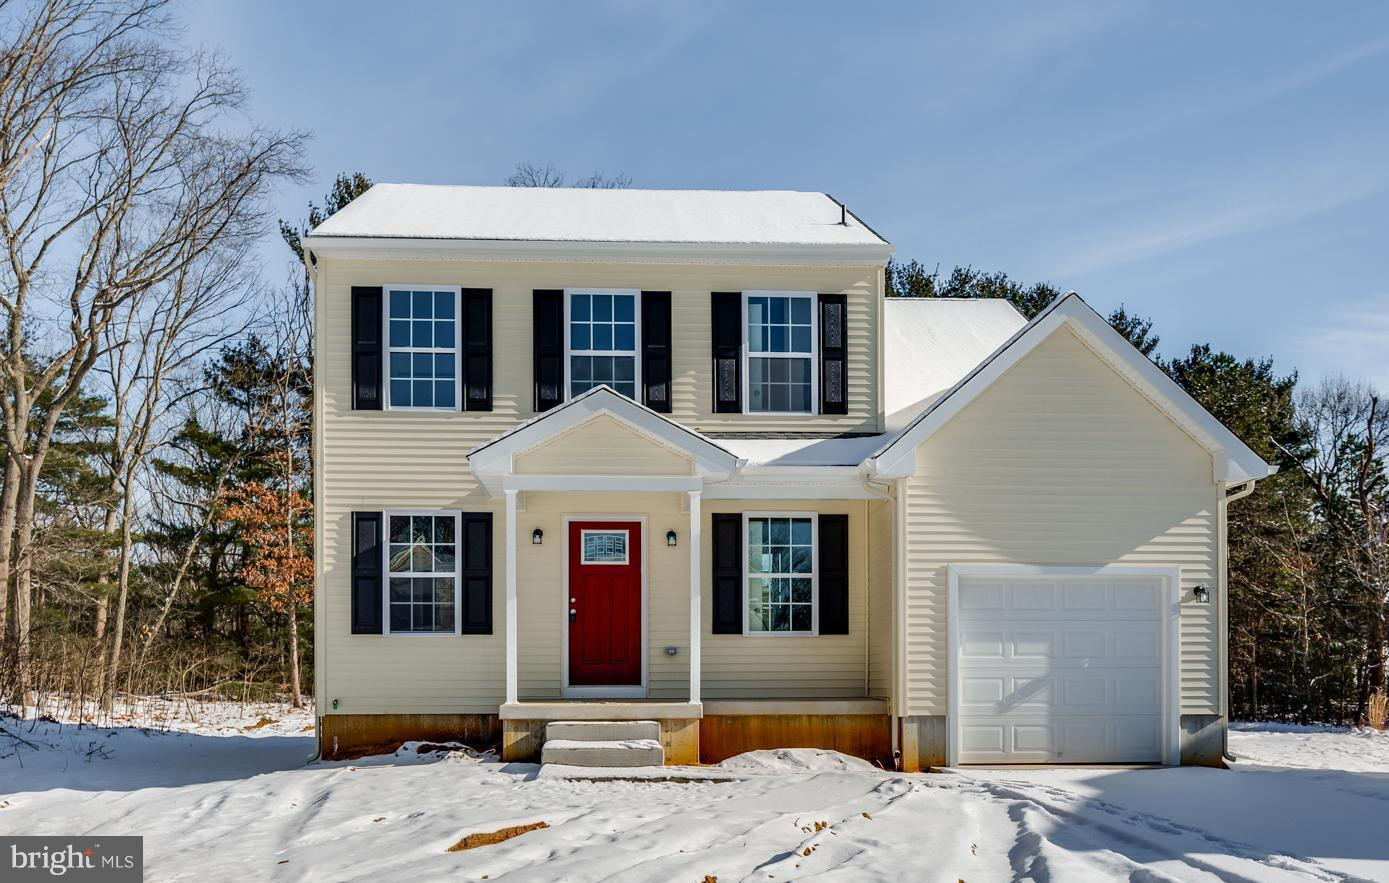 Single Family Home for Sale at 2 KING GEORGE Road Pine Hill, New Jersey 08021 United States